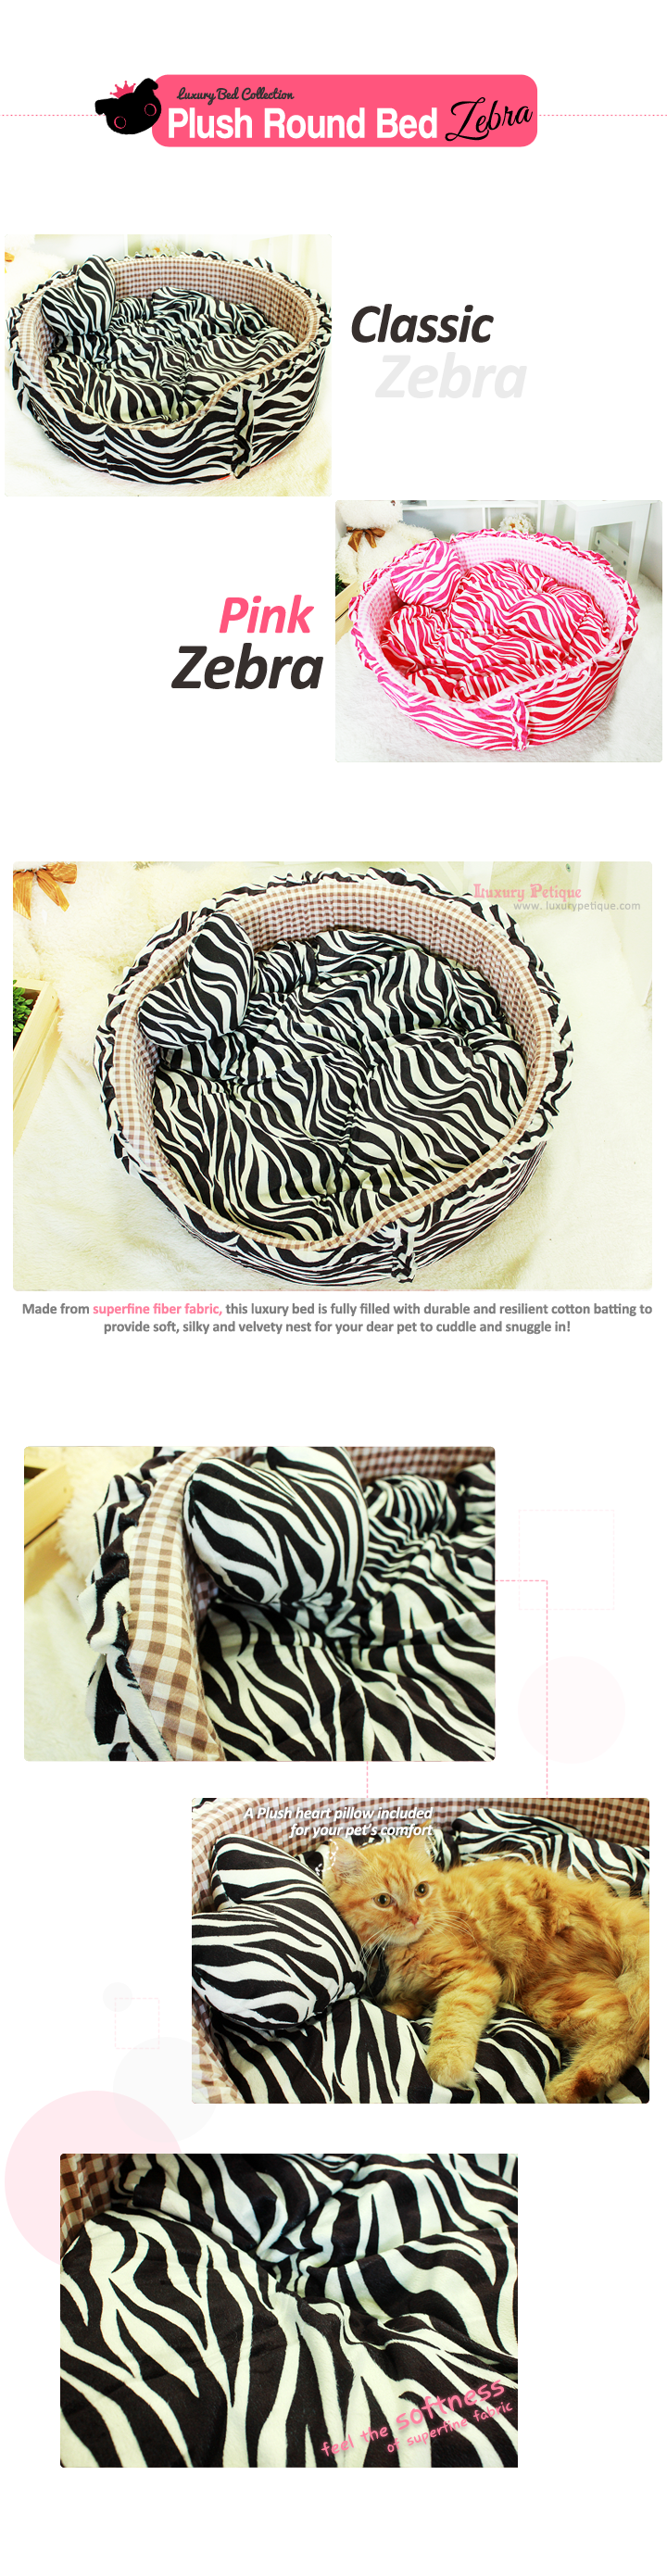 zebra-plush-round-bed-1.png